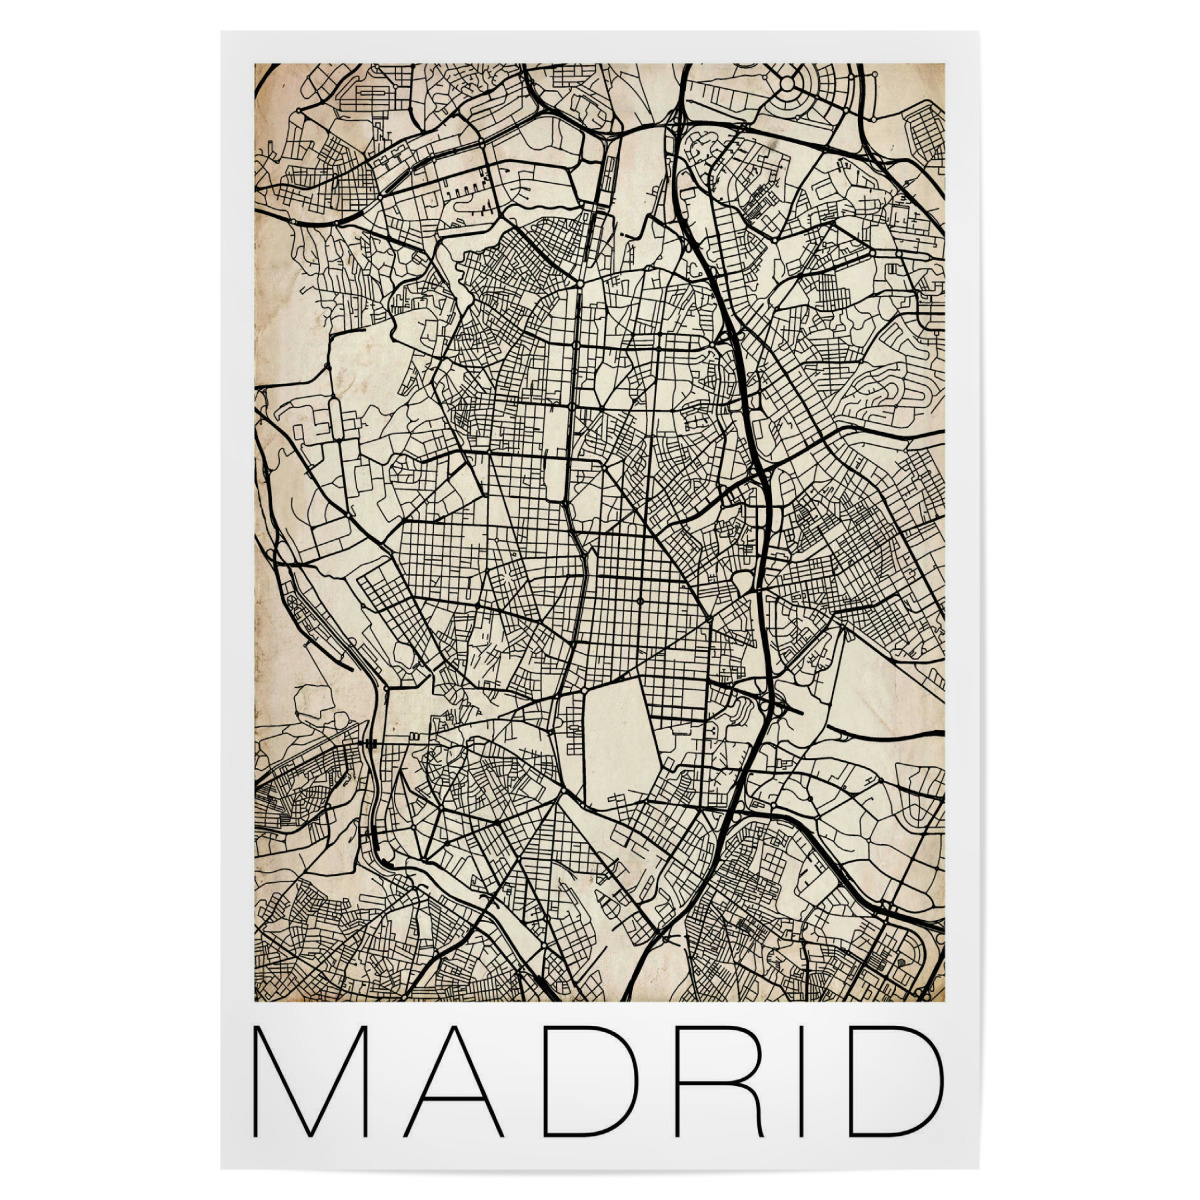 Retro City Map Madrid als Poster bei artboxONE kaufen on